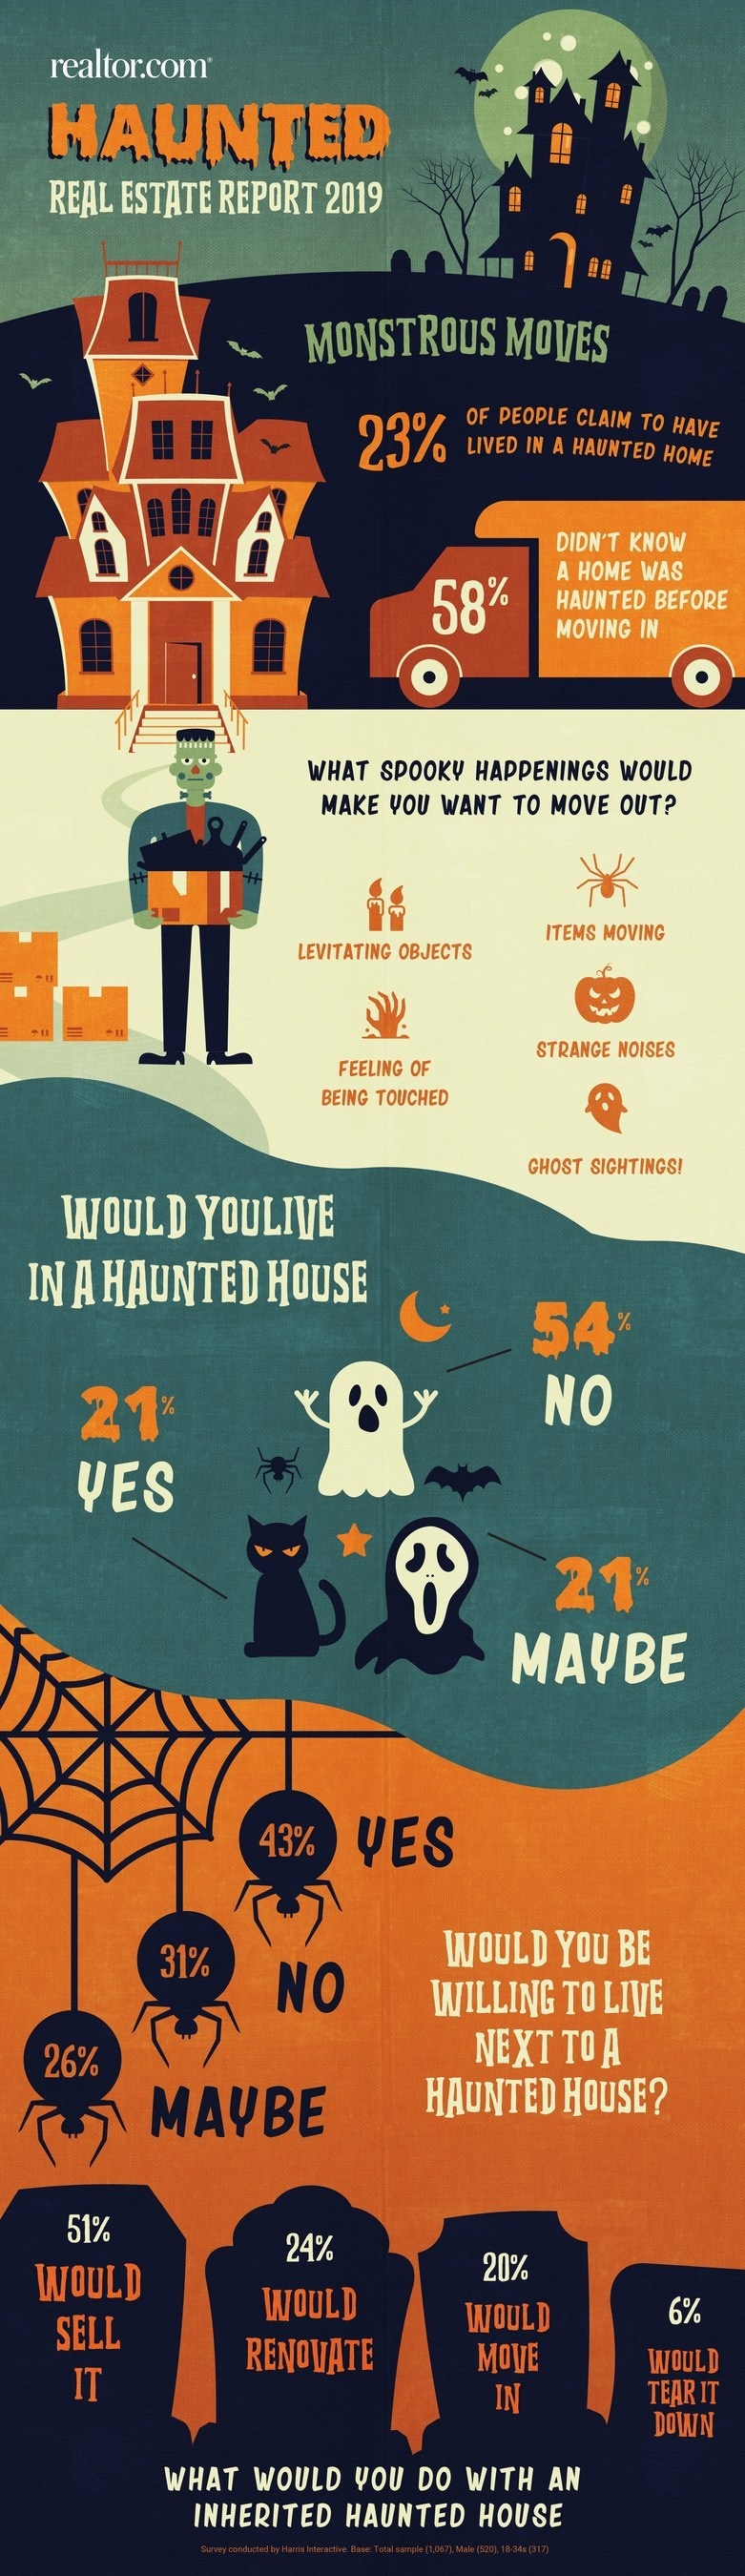 realtor.com haunted house infographic.